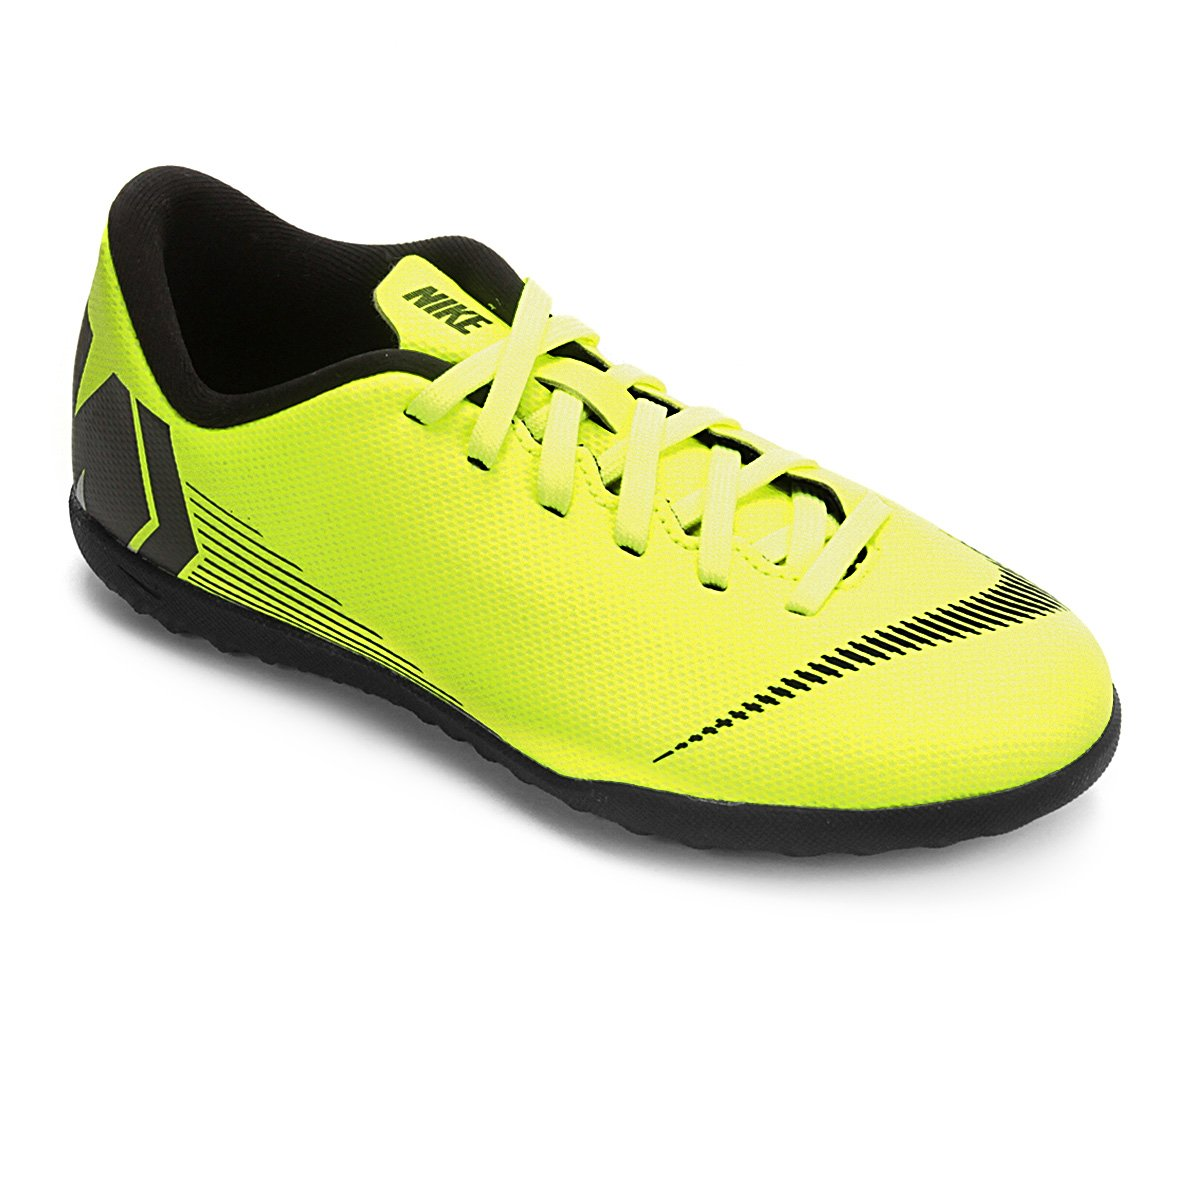 e66640e2956e3 Chuteira Society Infantil Nike Mercurial VaporX 12 Club GS TF | Loja do  Inter